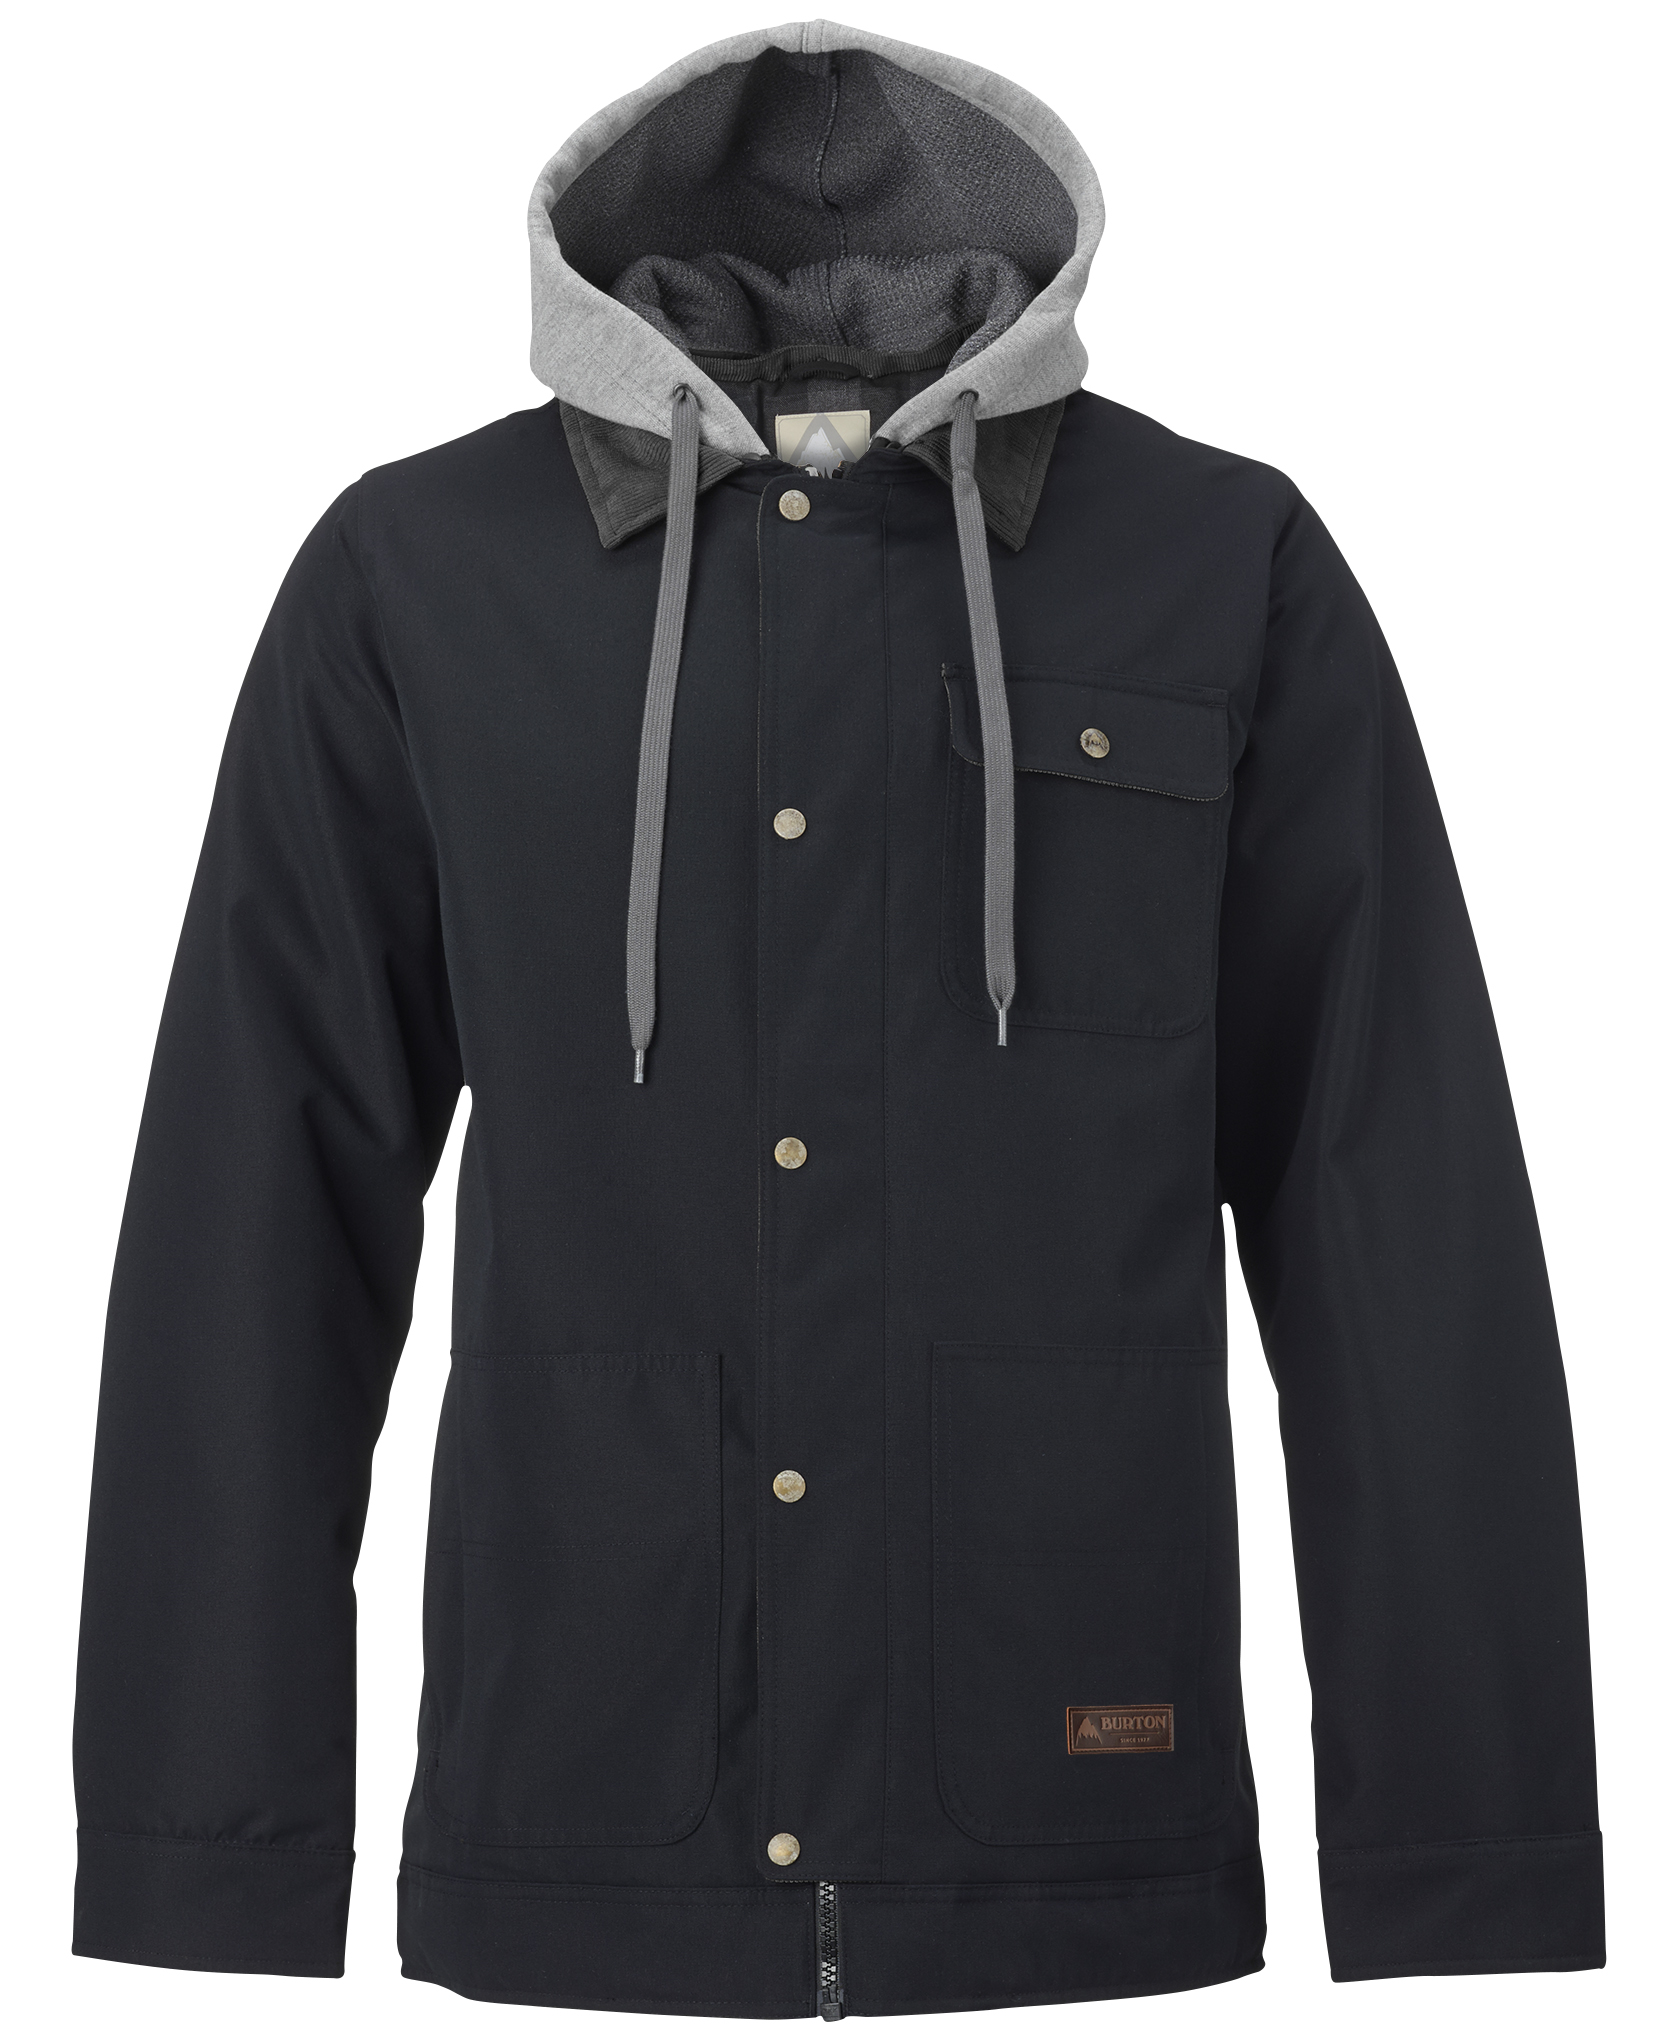 DUNMORE JACKET BLACK 18H